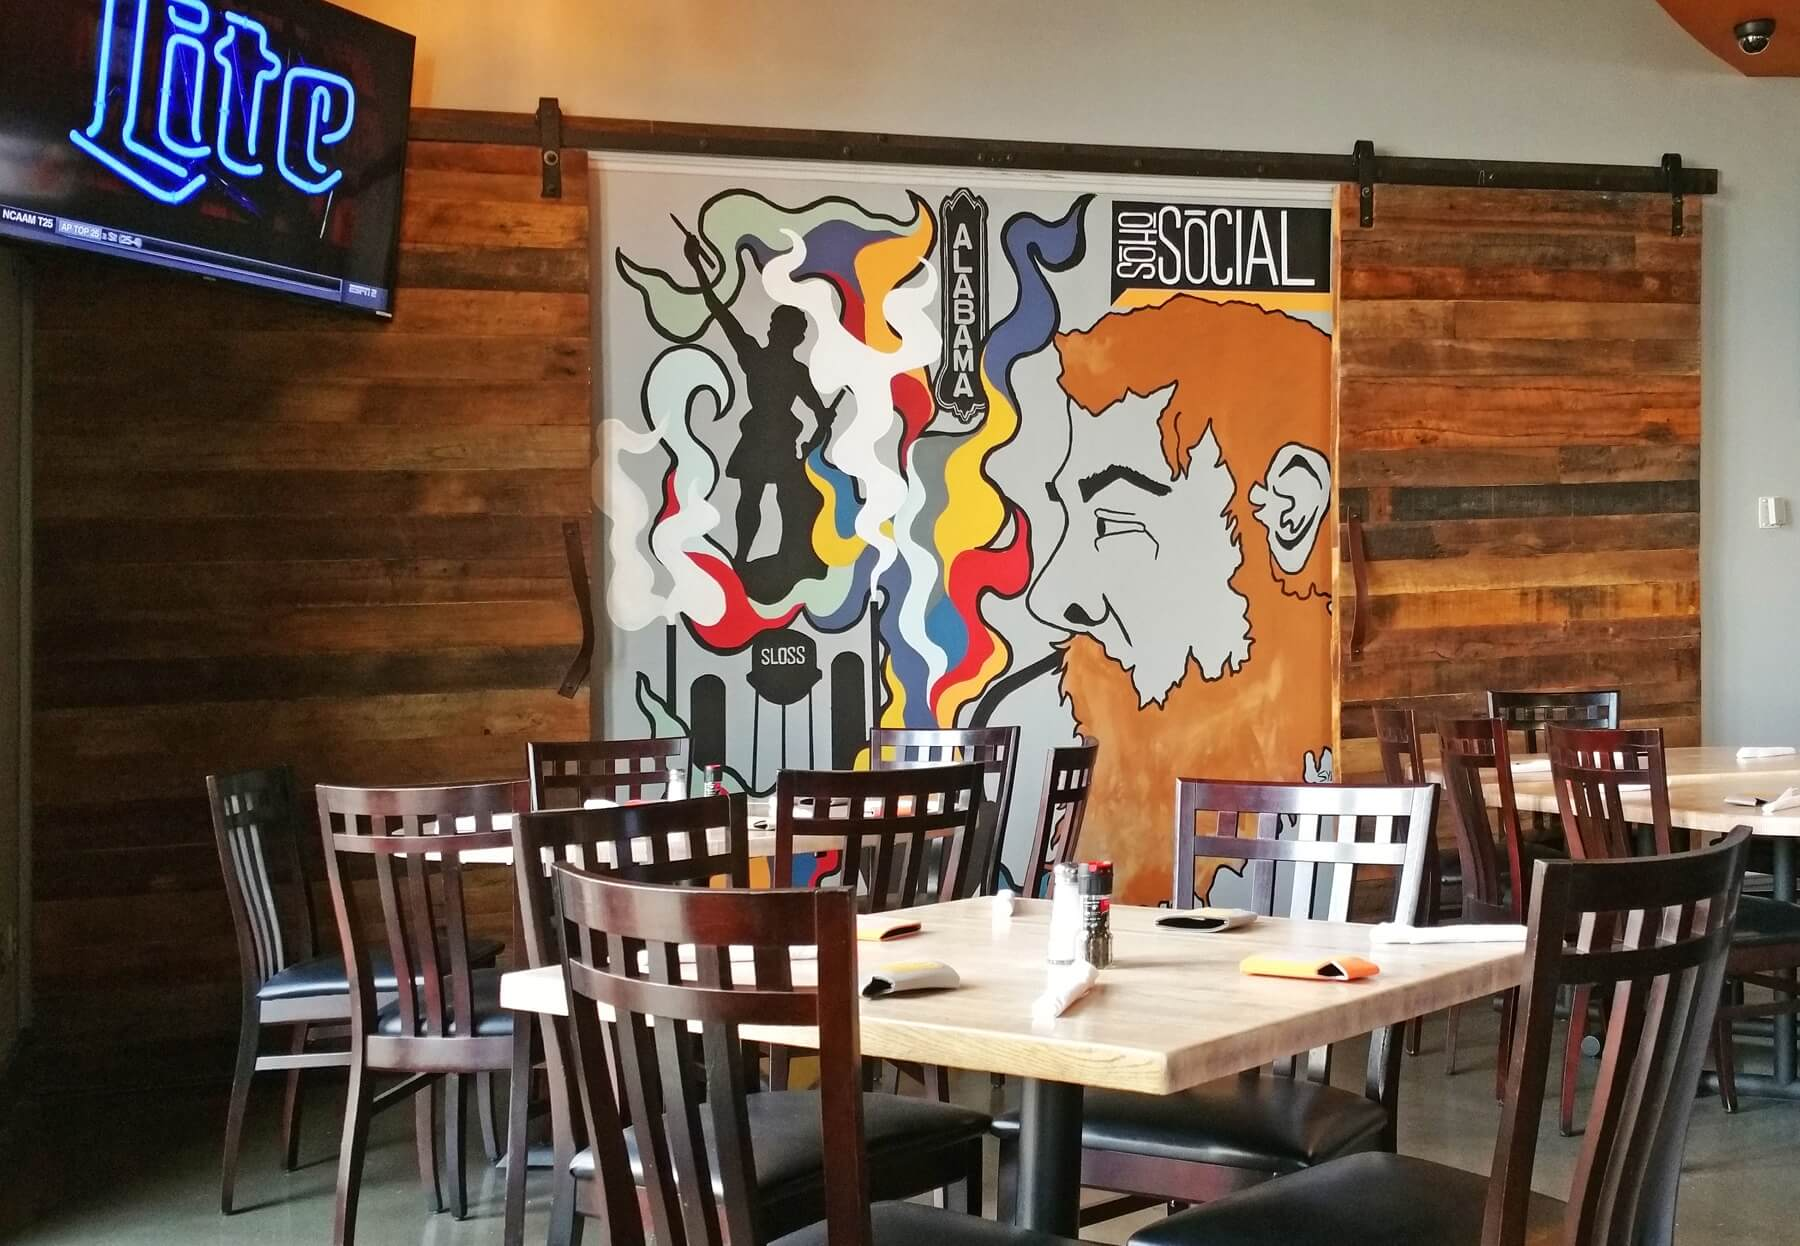 The SoHo Social signature mural was painted by the co-owners' talented friend, Sydney Harrington.